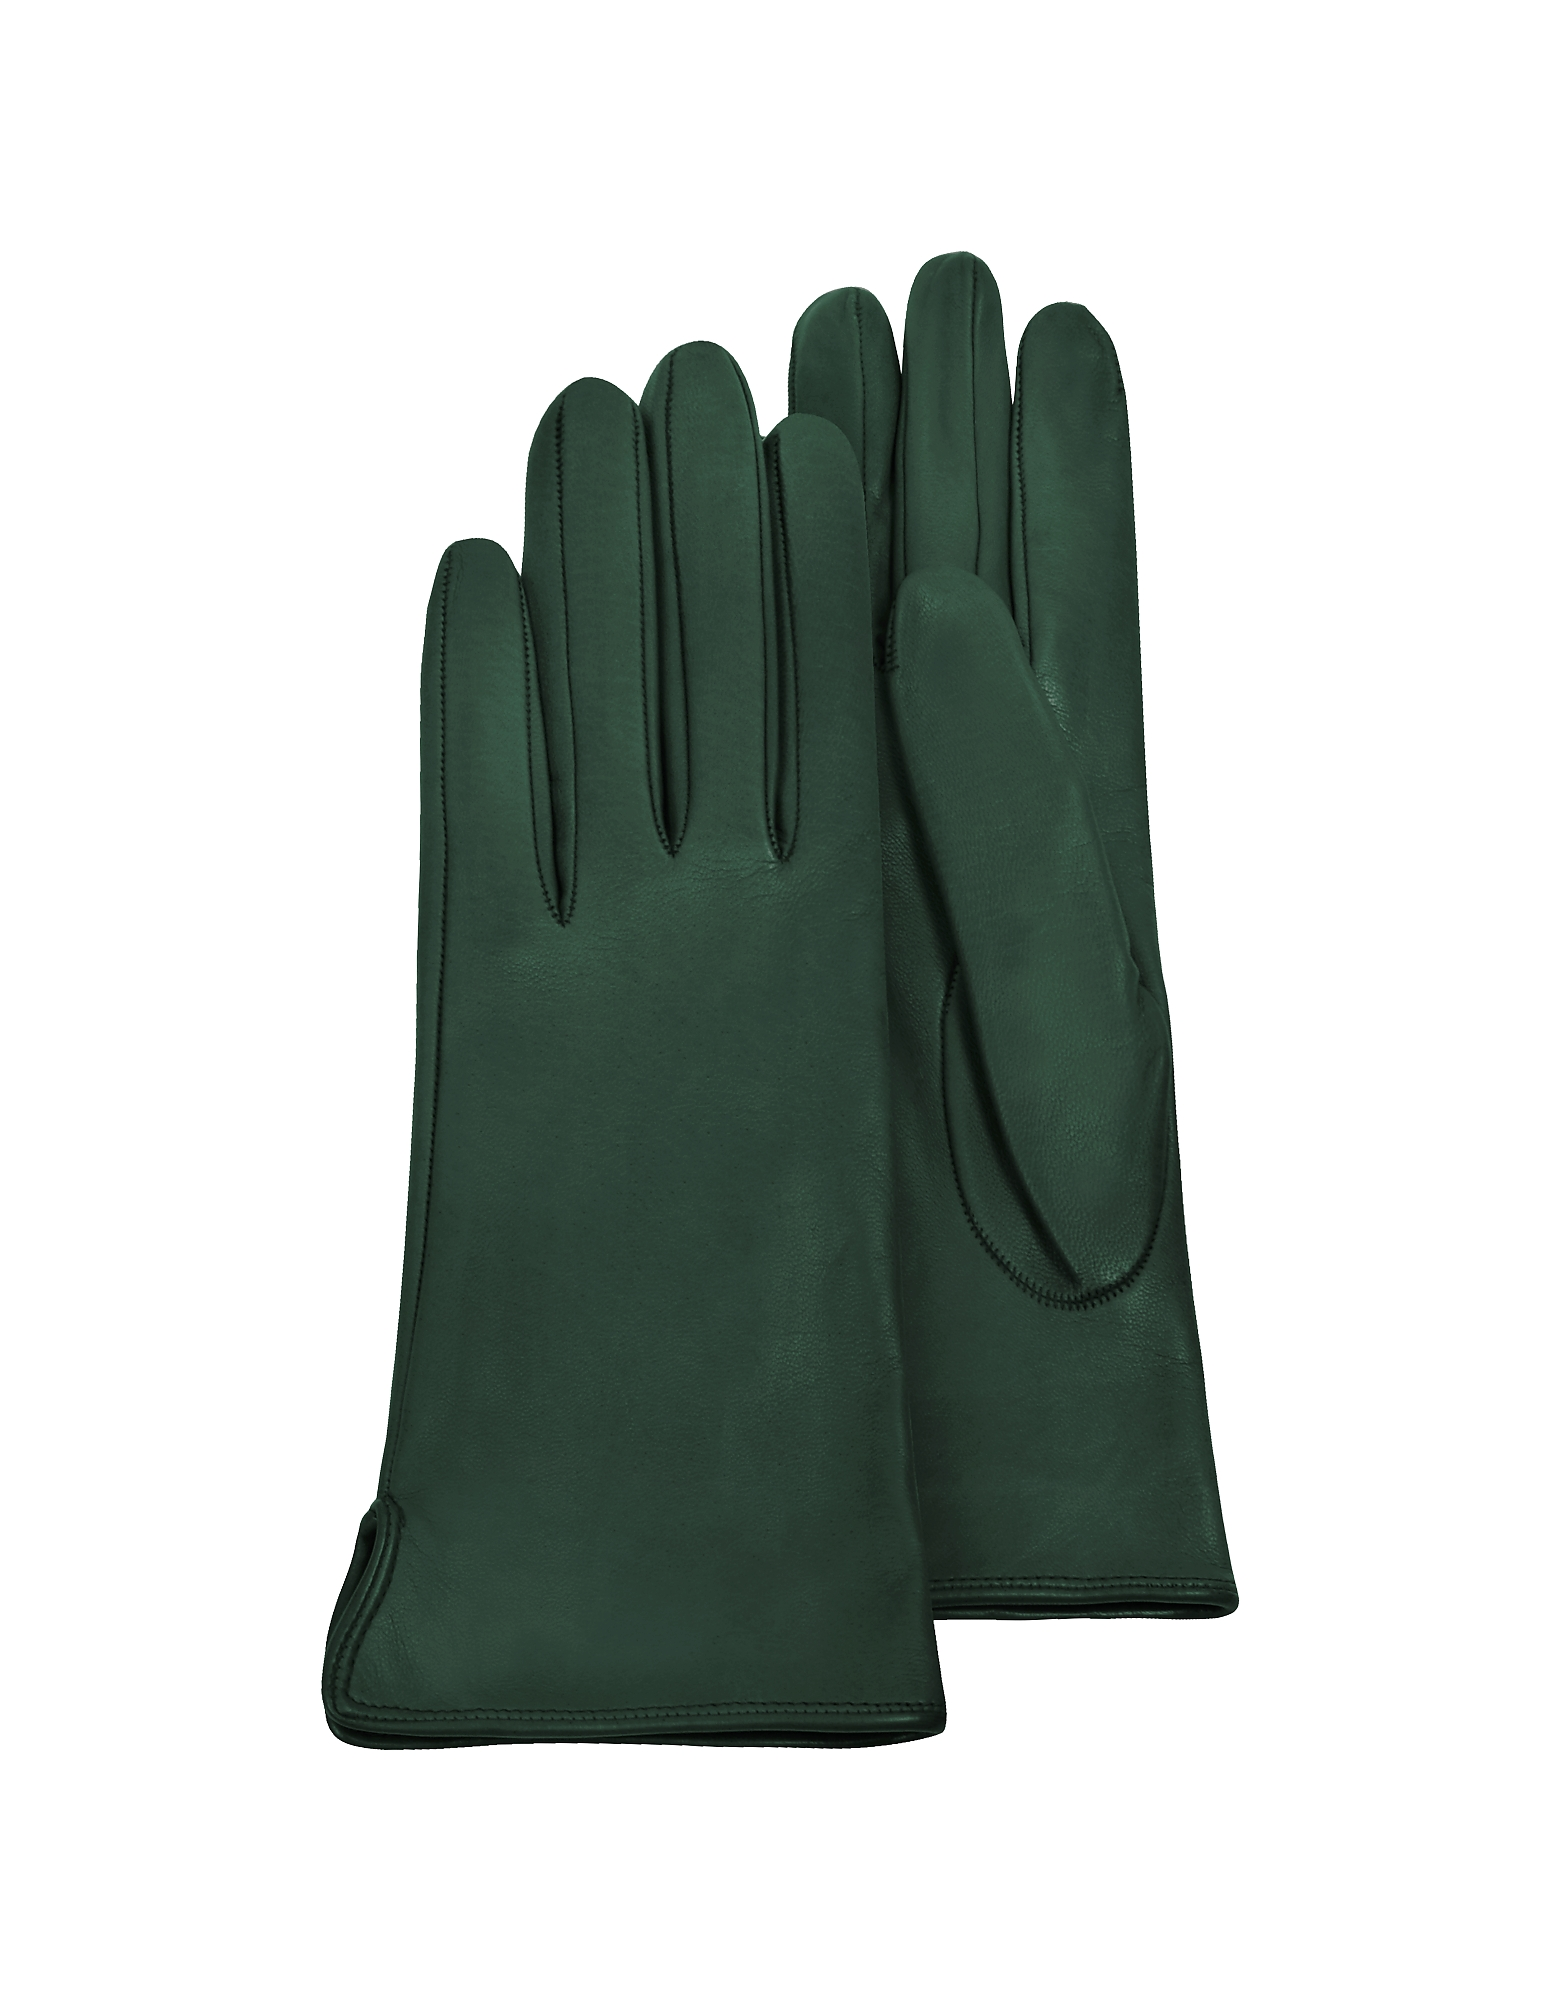 Forest Green Calf Leather Women's Gloves w/Silk Lining от Forzieri.com INT